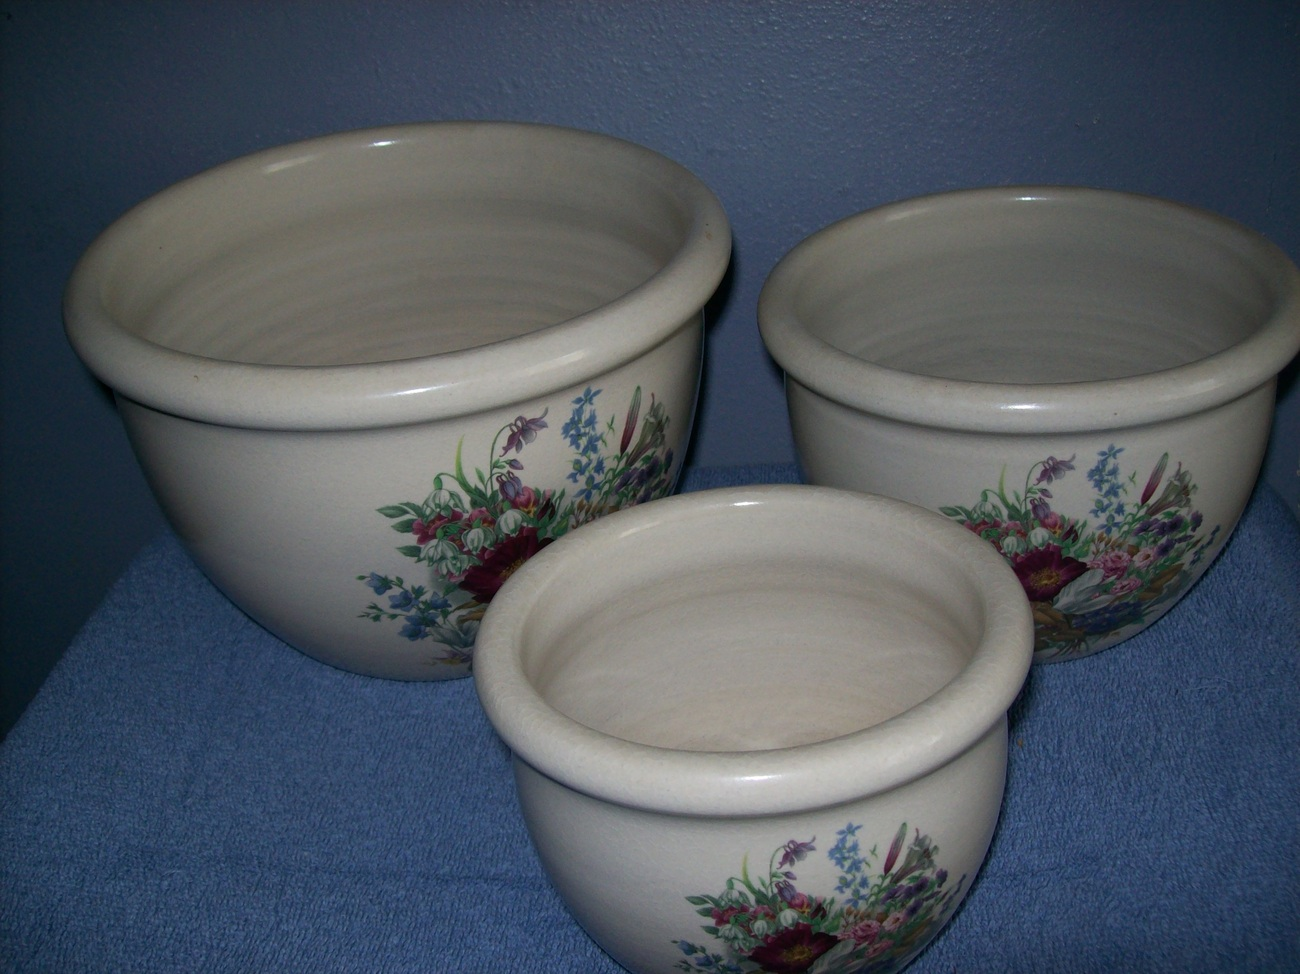 3 piece bowl set from Shakers and Thangs pottery